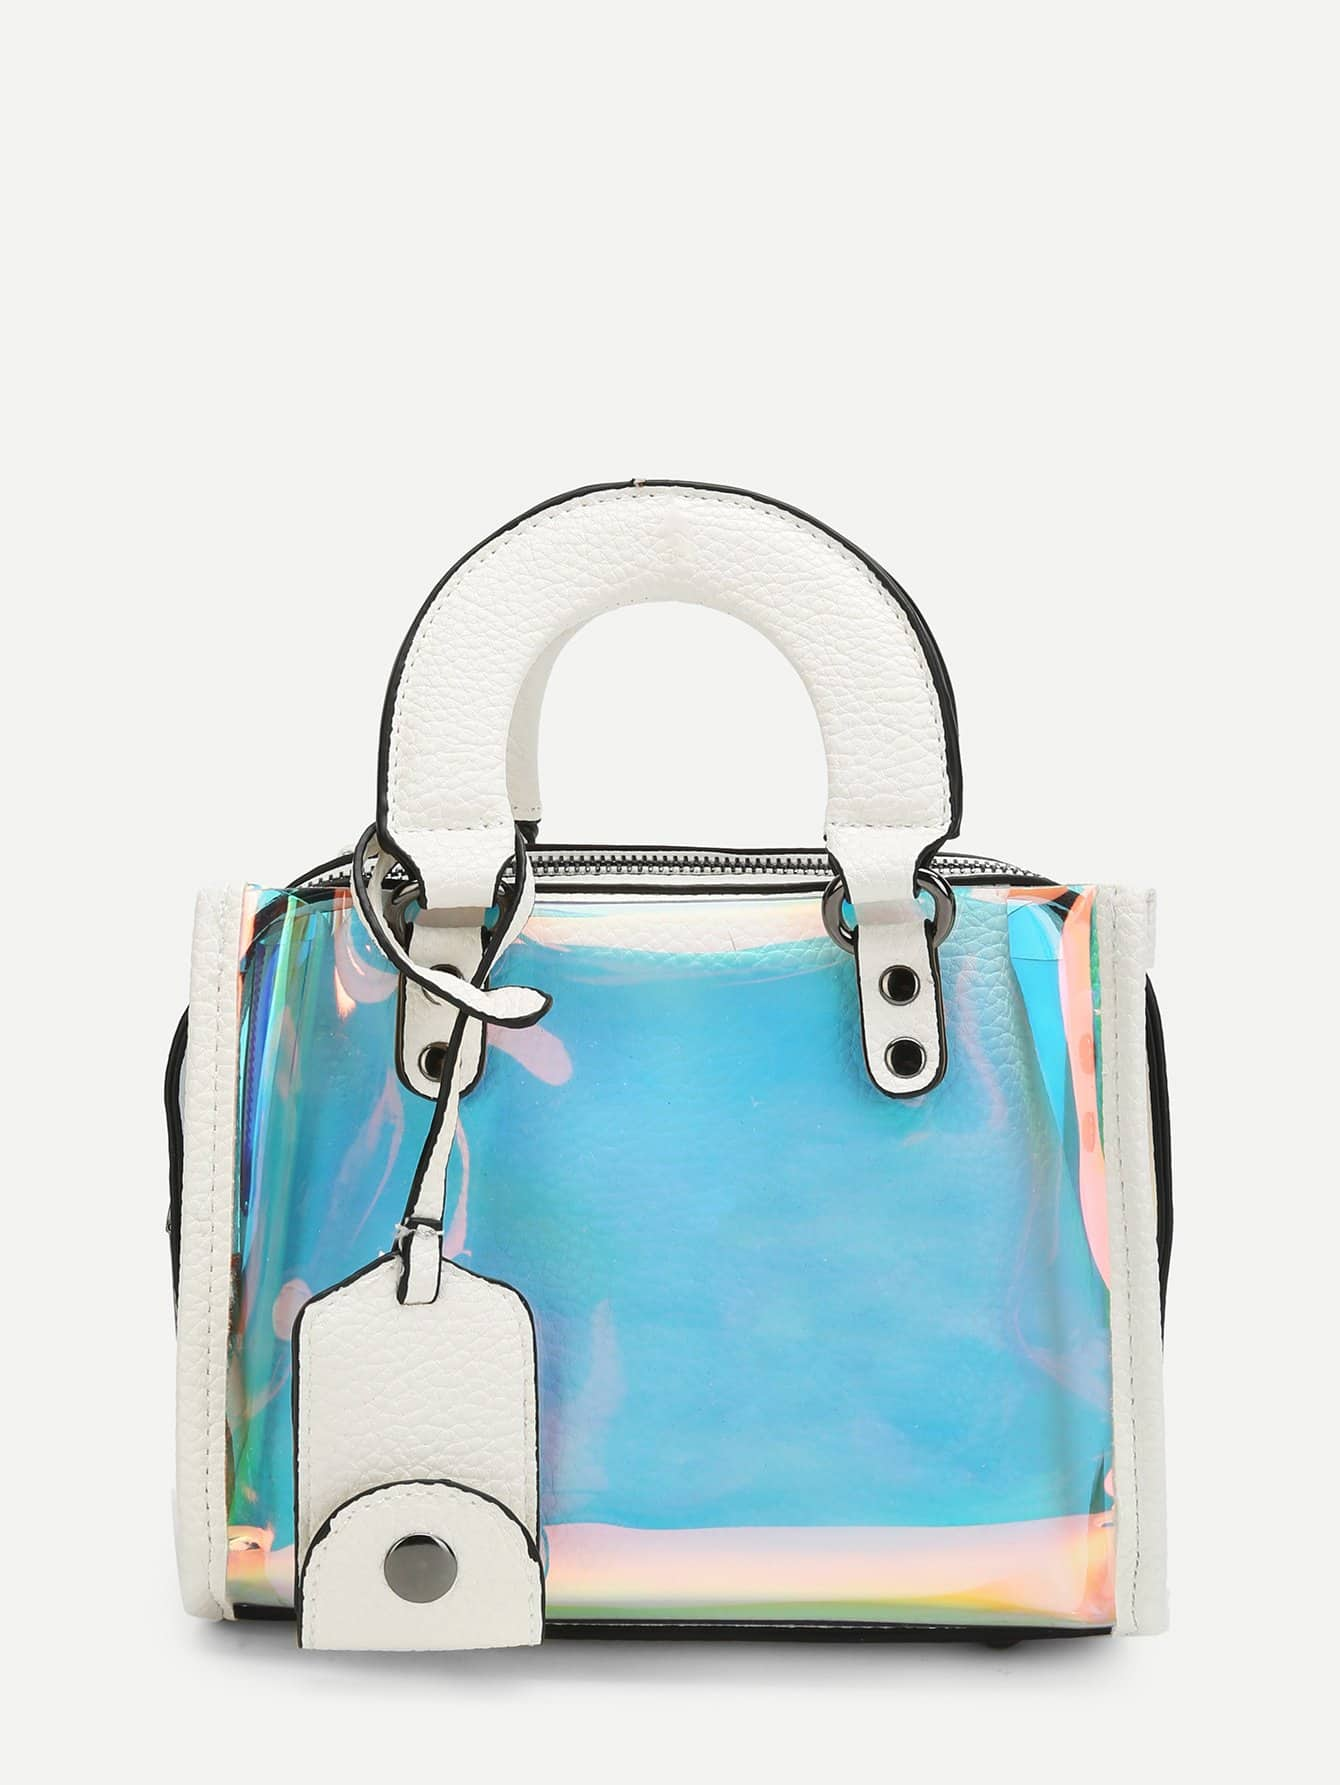 Фото - Double Handle Iridescence Tote Bag sequin tote bag with double handle